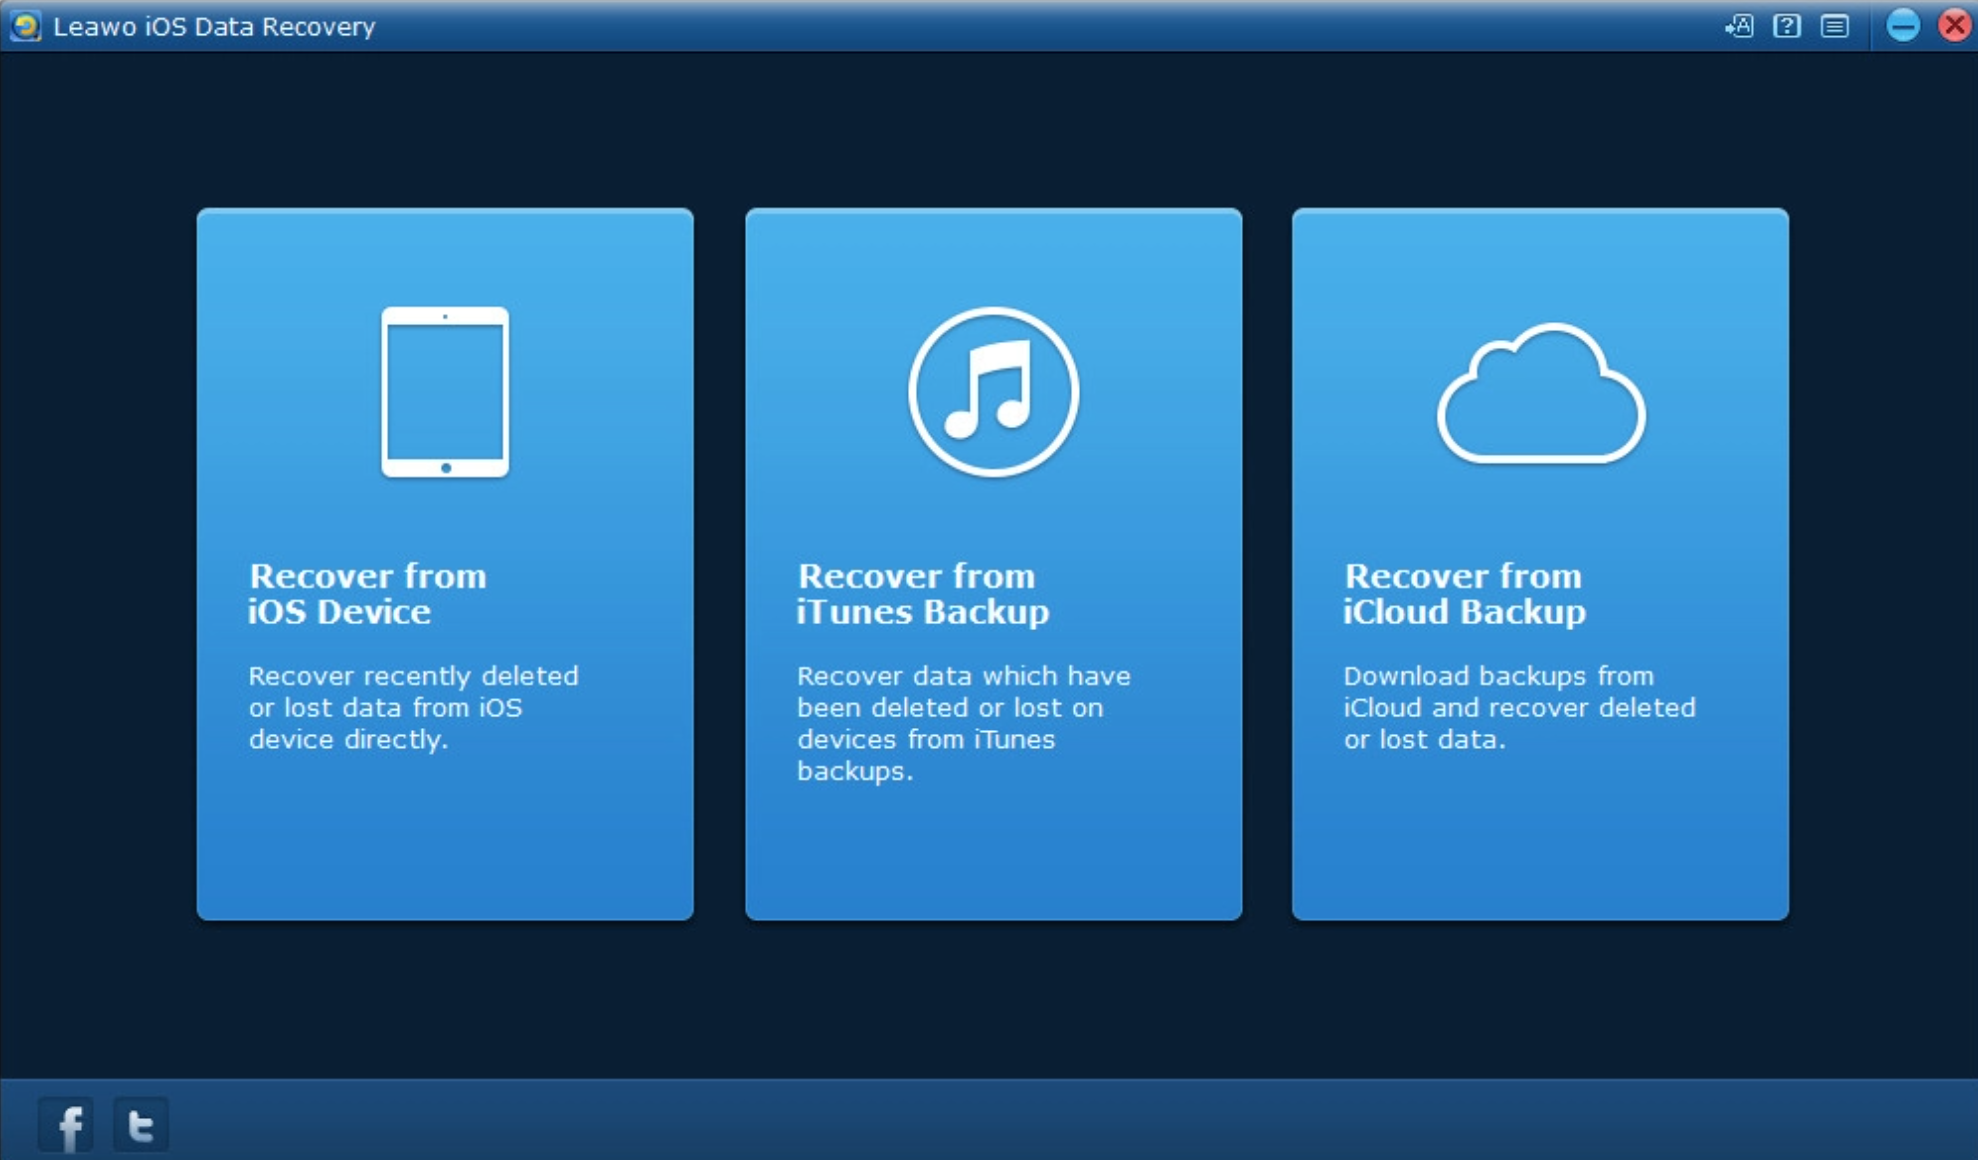 how-to-use-Leawo-iSO-data-recovery-to-recover-whatsapp-chat 01